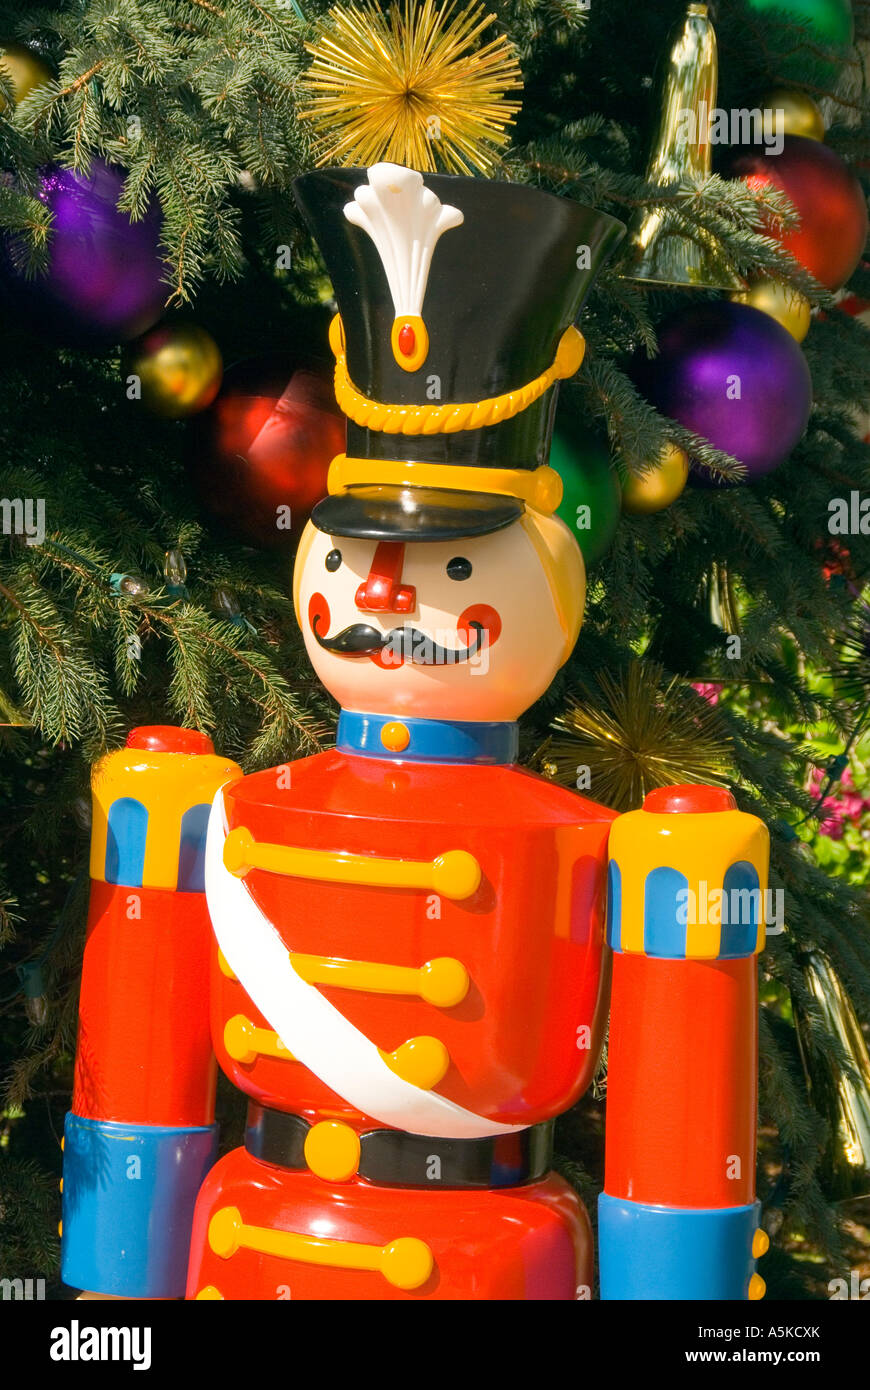 christmas decoration wooden soldier stock image - Christmas Decorations Wooden Soldiers